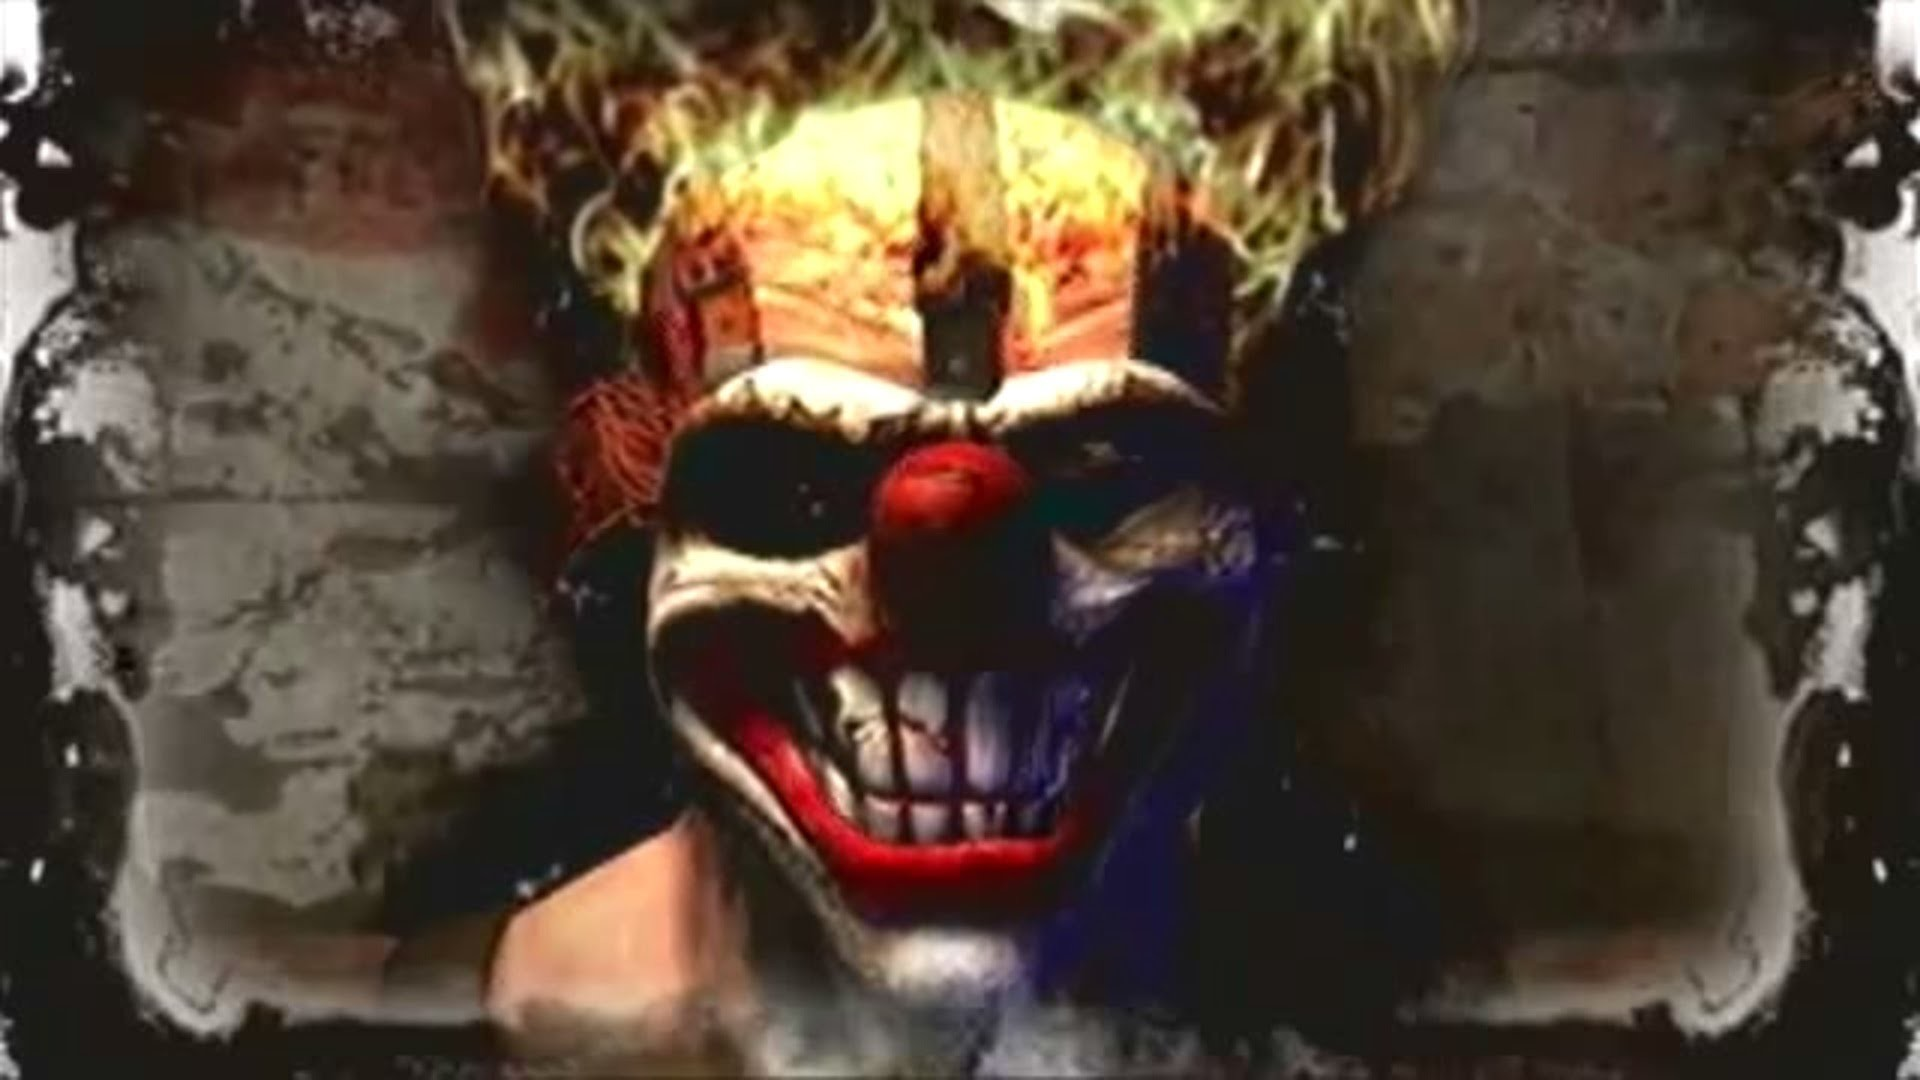 Twisted metal wallpaper hd 66 images - Sweet tooth wallpaper twisted metal ...